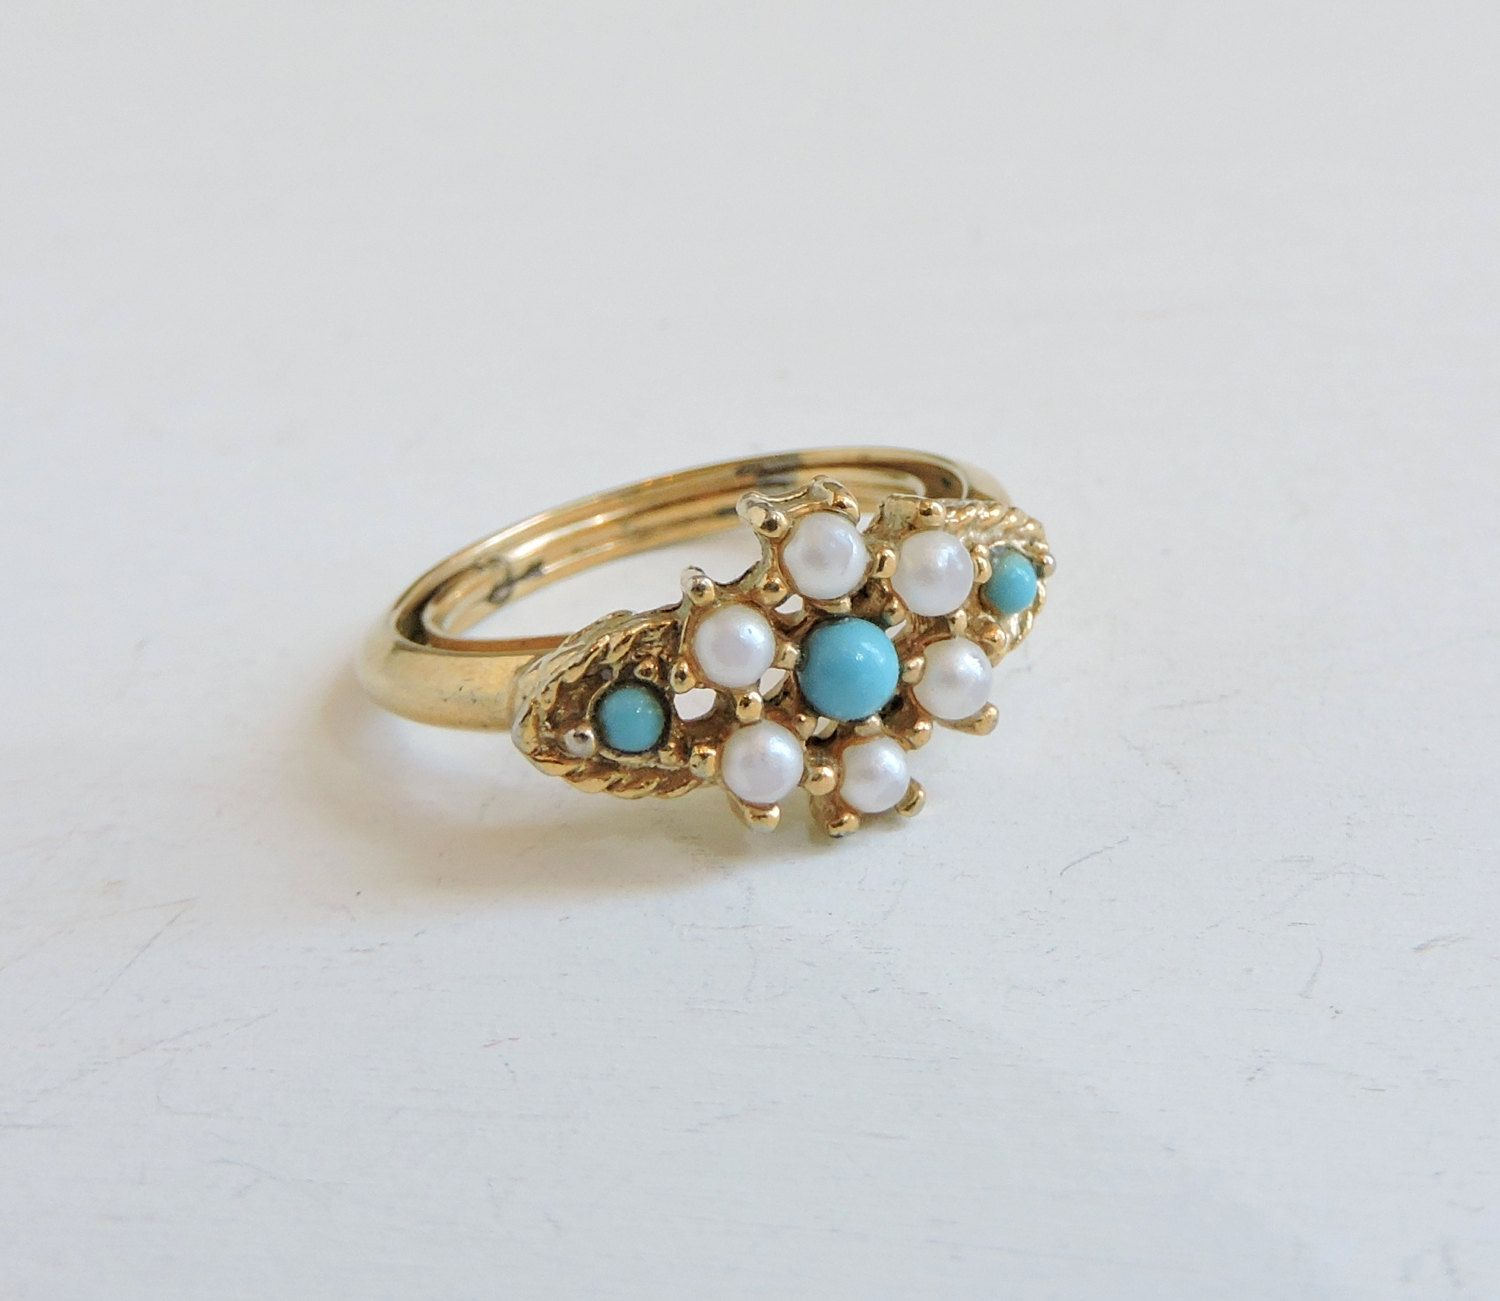 Vintage Signed Avon Ring Glass Pearl Ring Faux Turquoise